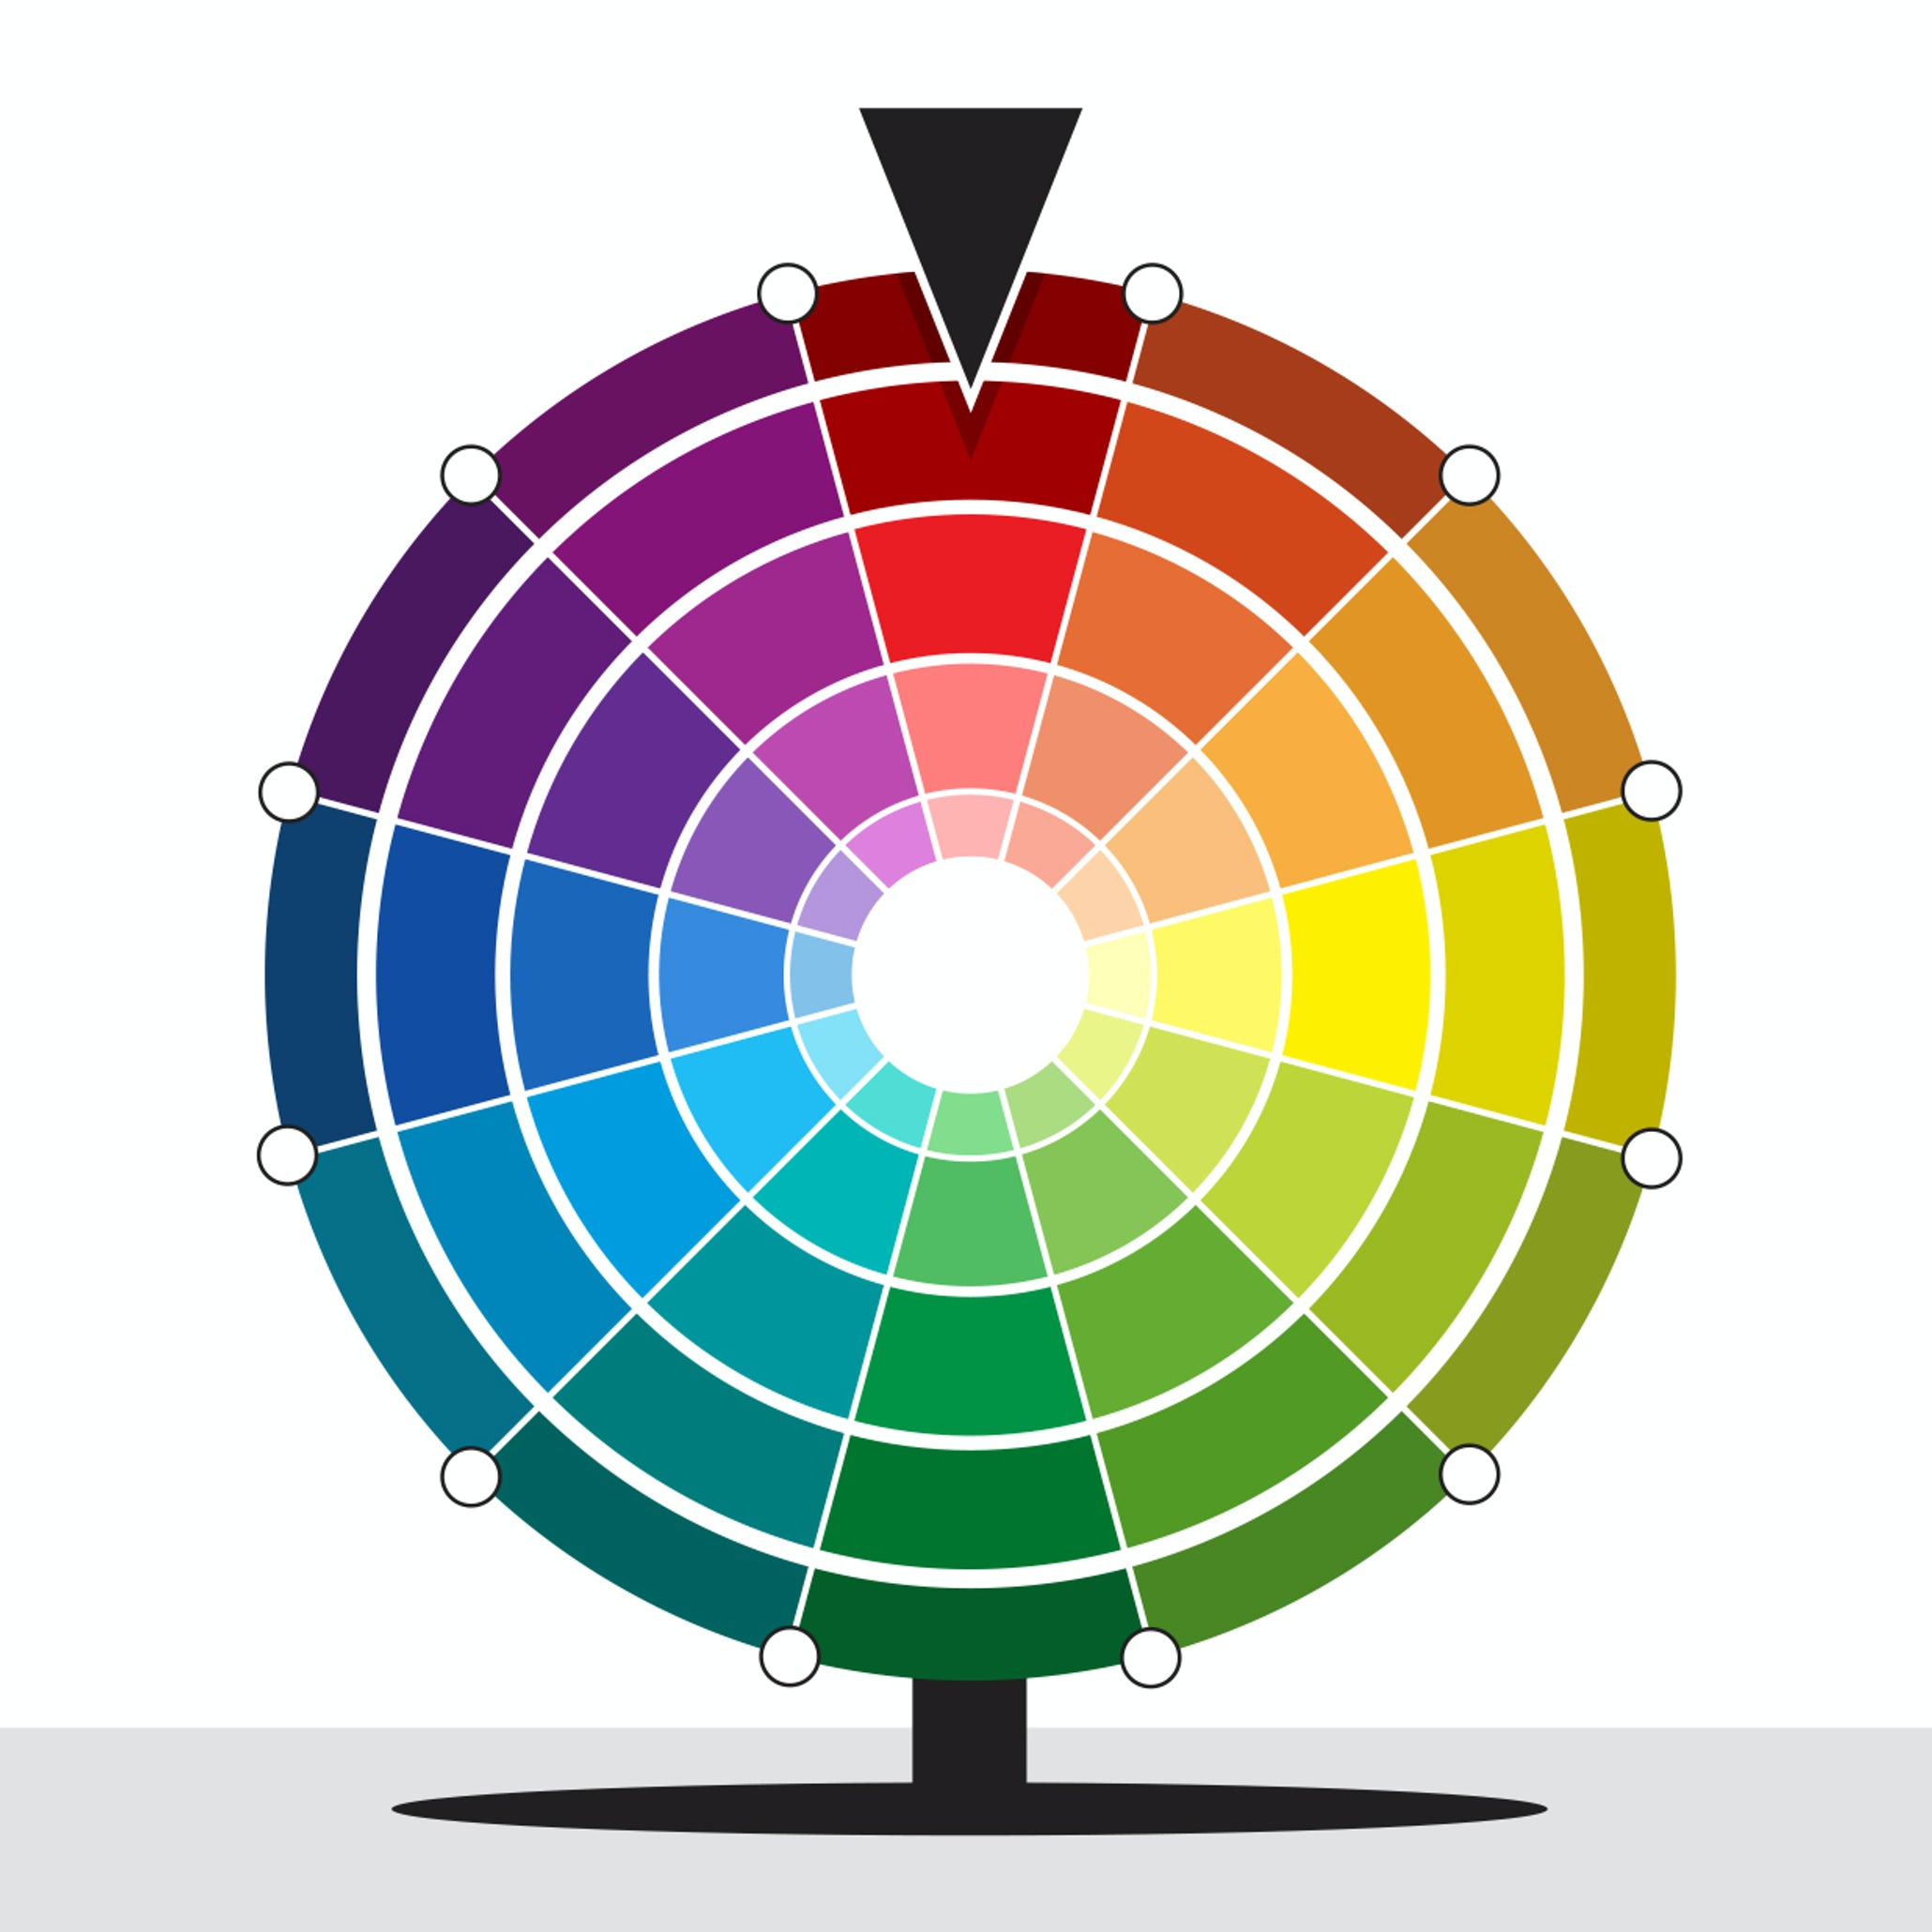 Branding Colors Everything You Need To Choose Your Brand S Perfect